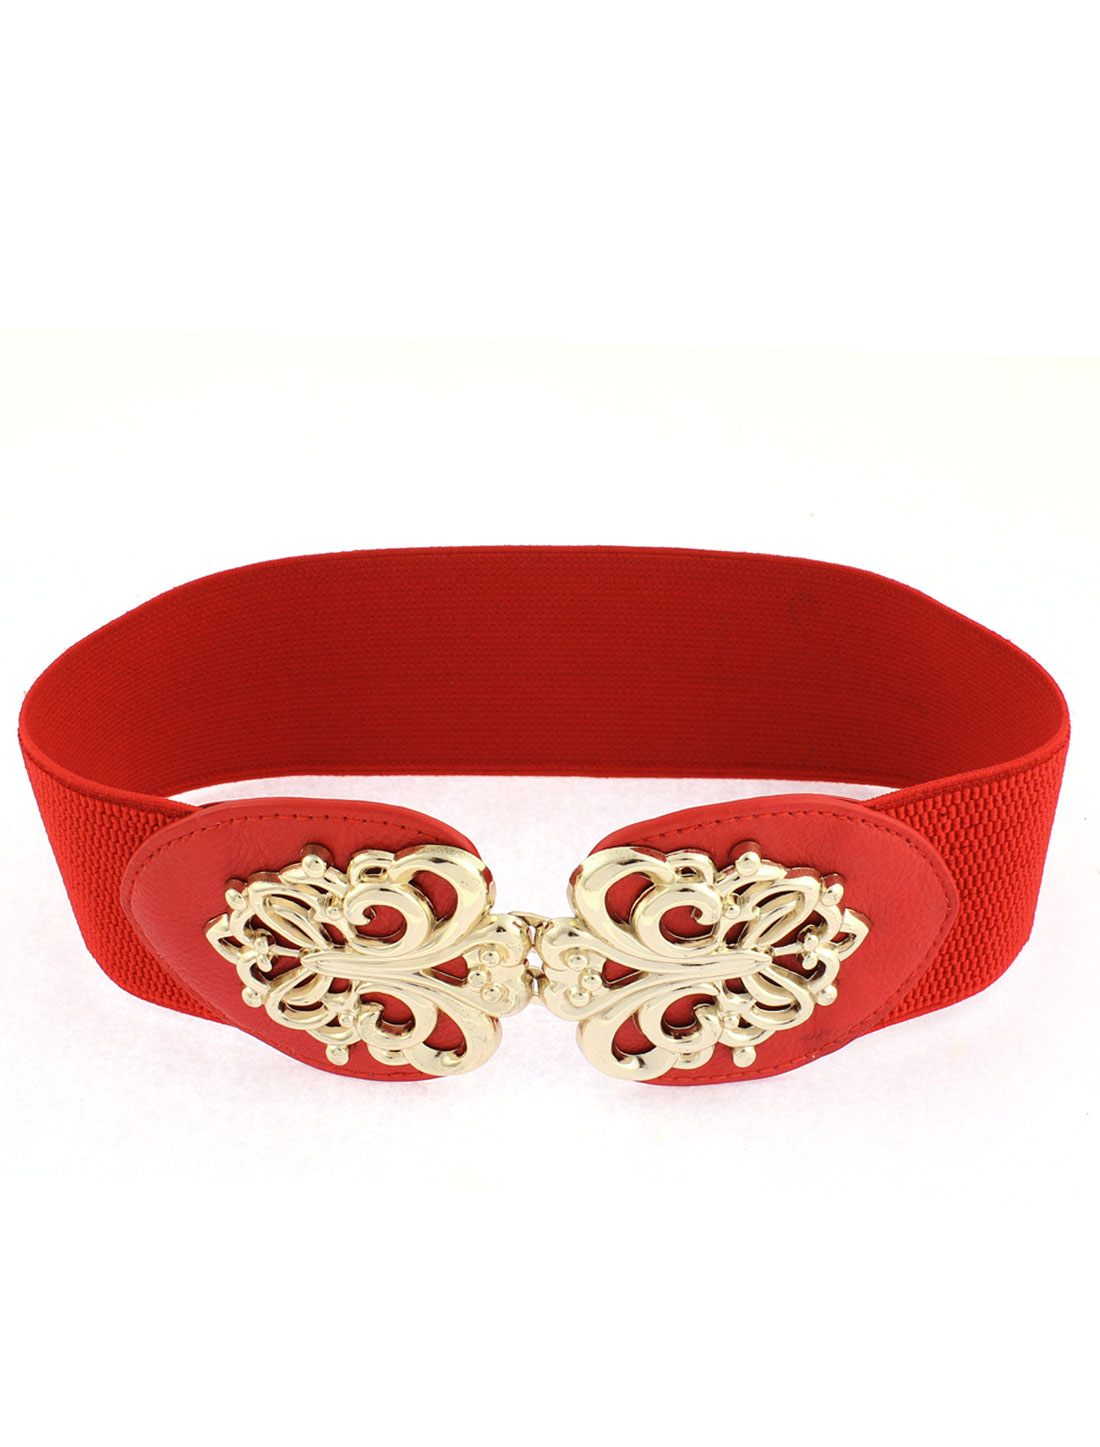 Women Interlocking Buckle Adjustable Elastic Wide Waistband Waist Belt Red